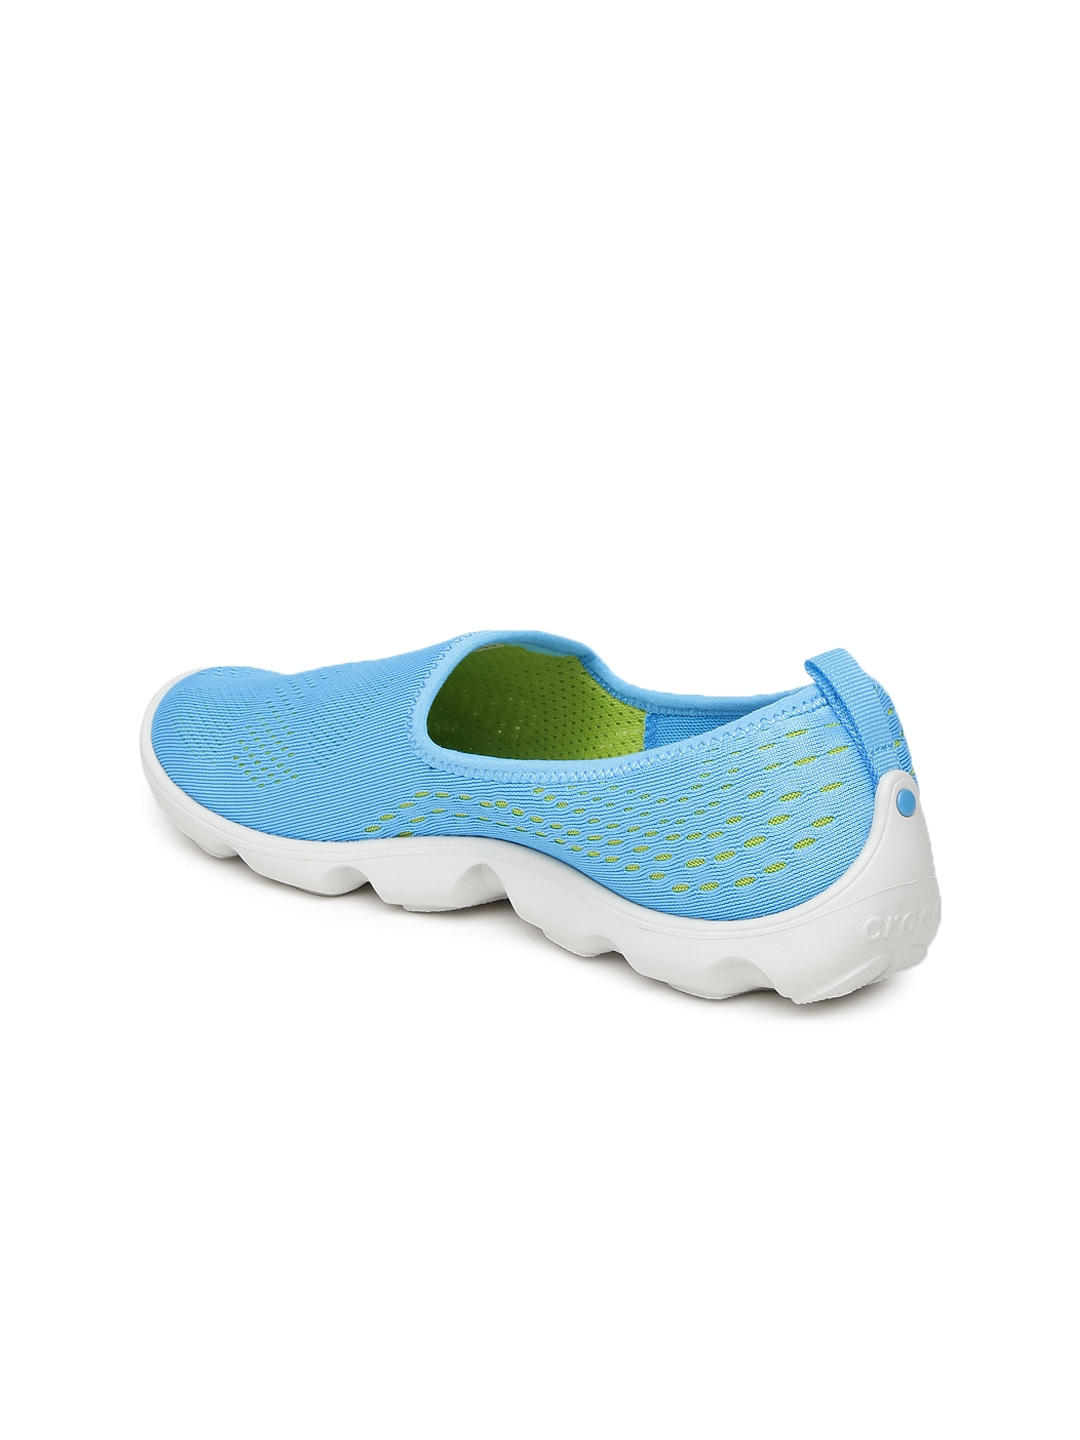 b483a8429b5d0a Buy Crocs Women Blue Slip On Sneakers - Casual Shoes for Women ...